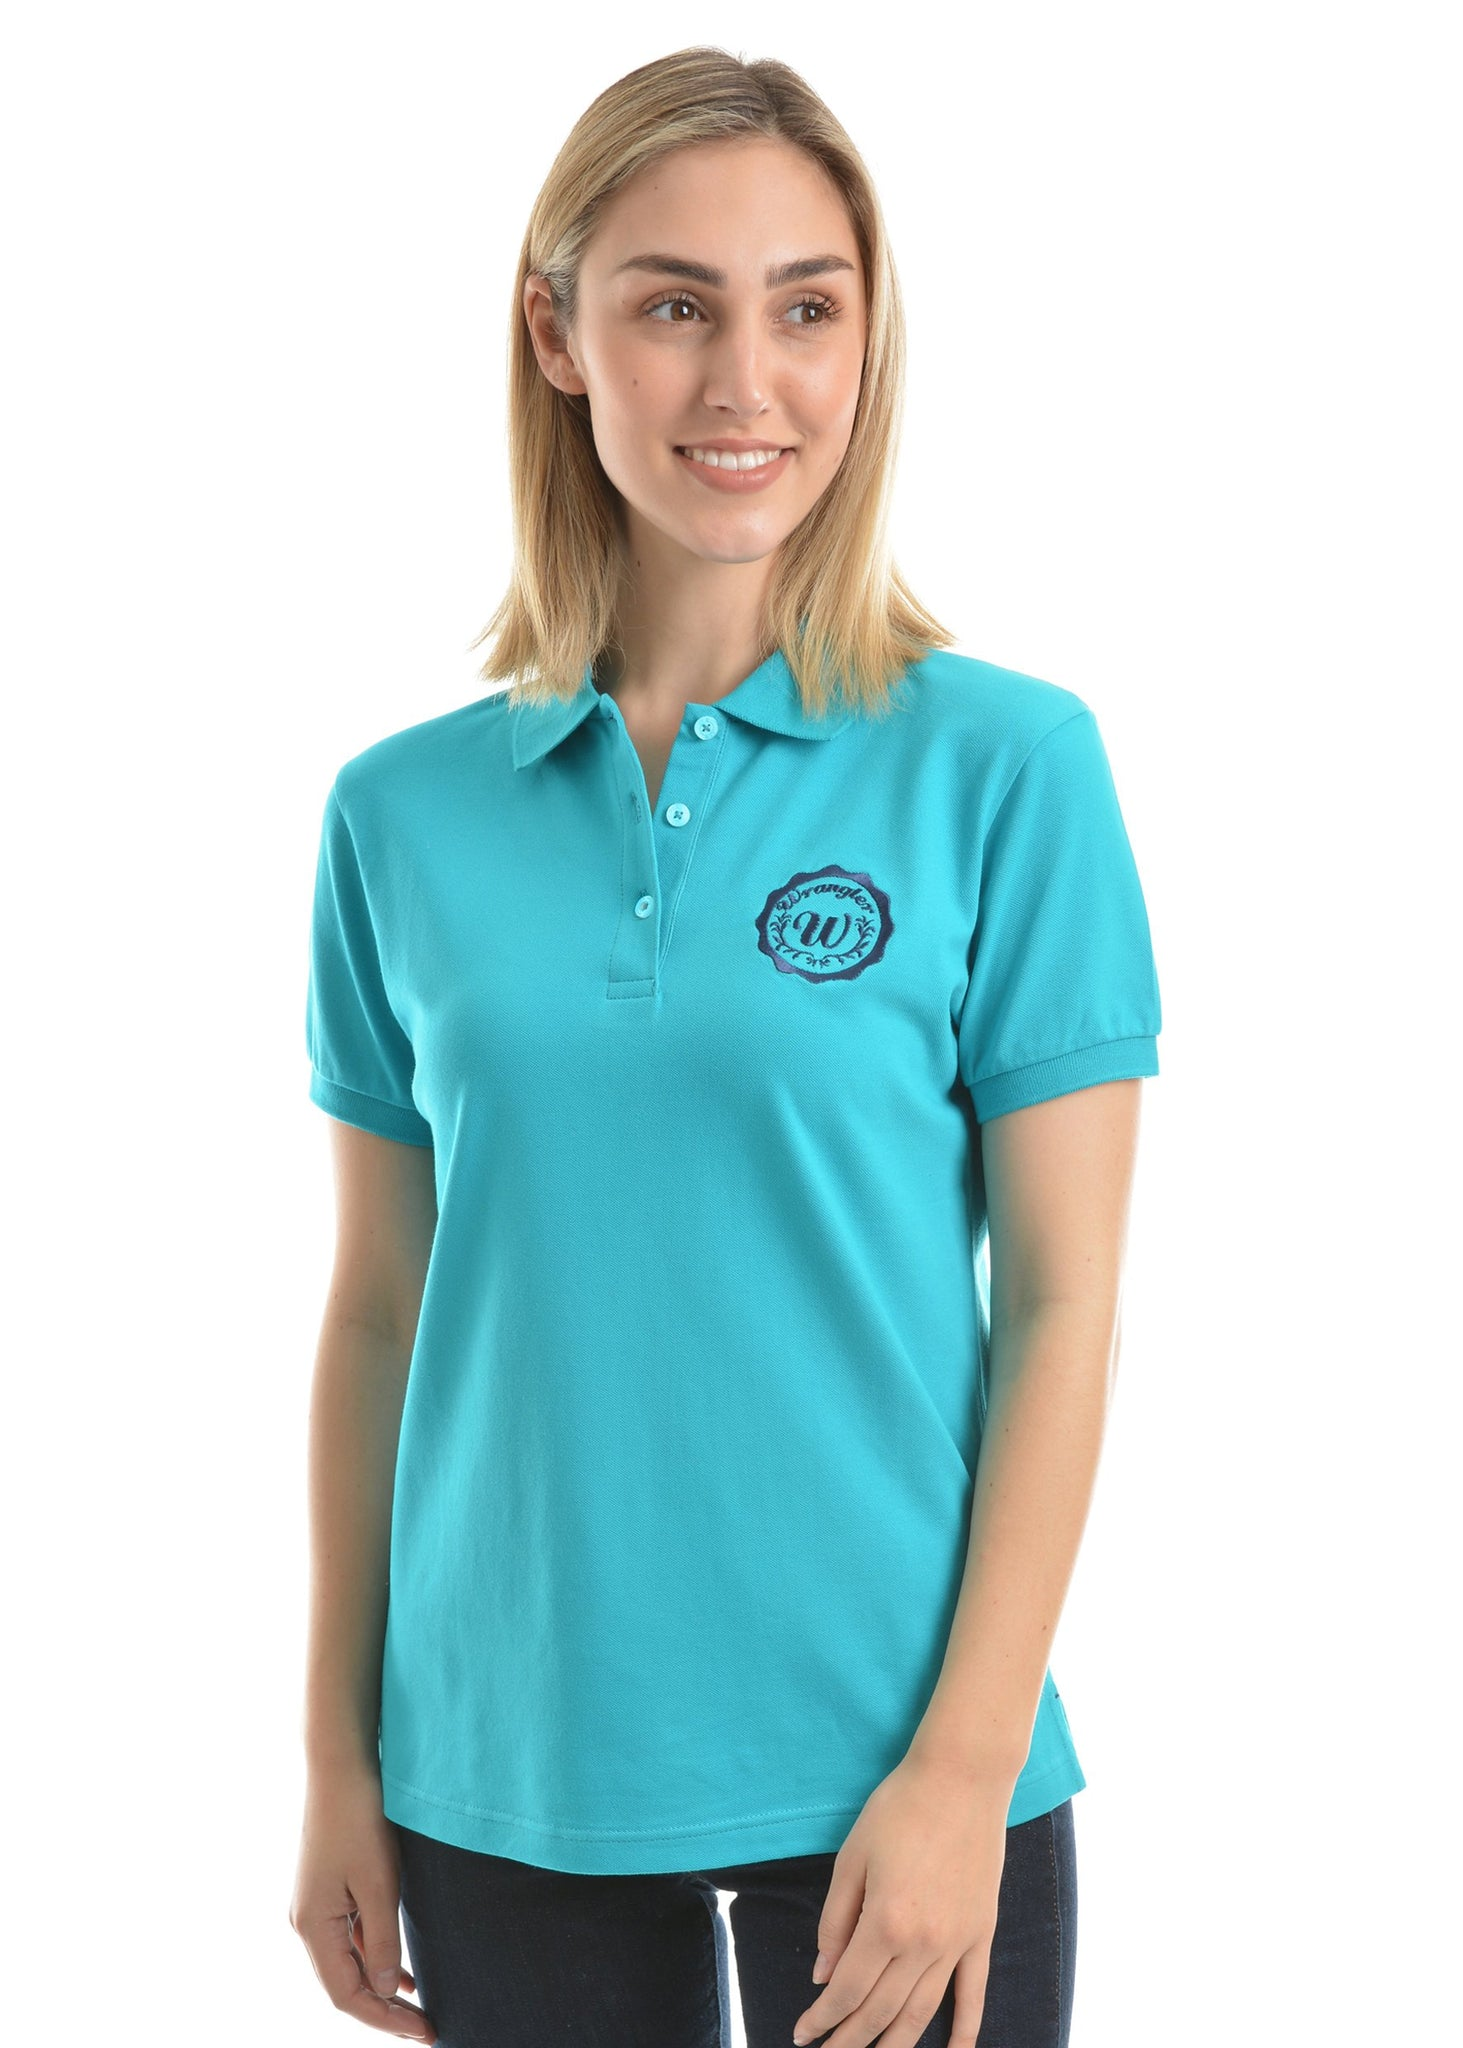 Womens Tina Polo - Teal - Womens shirt